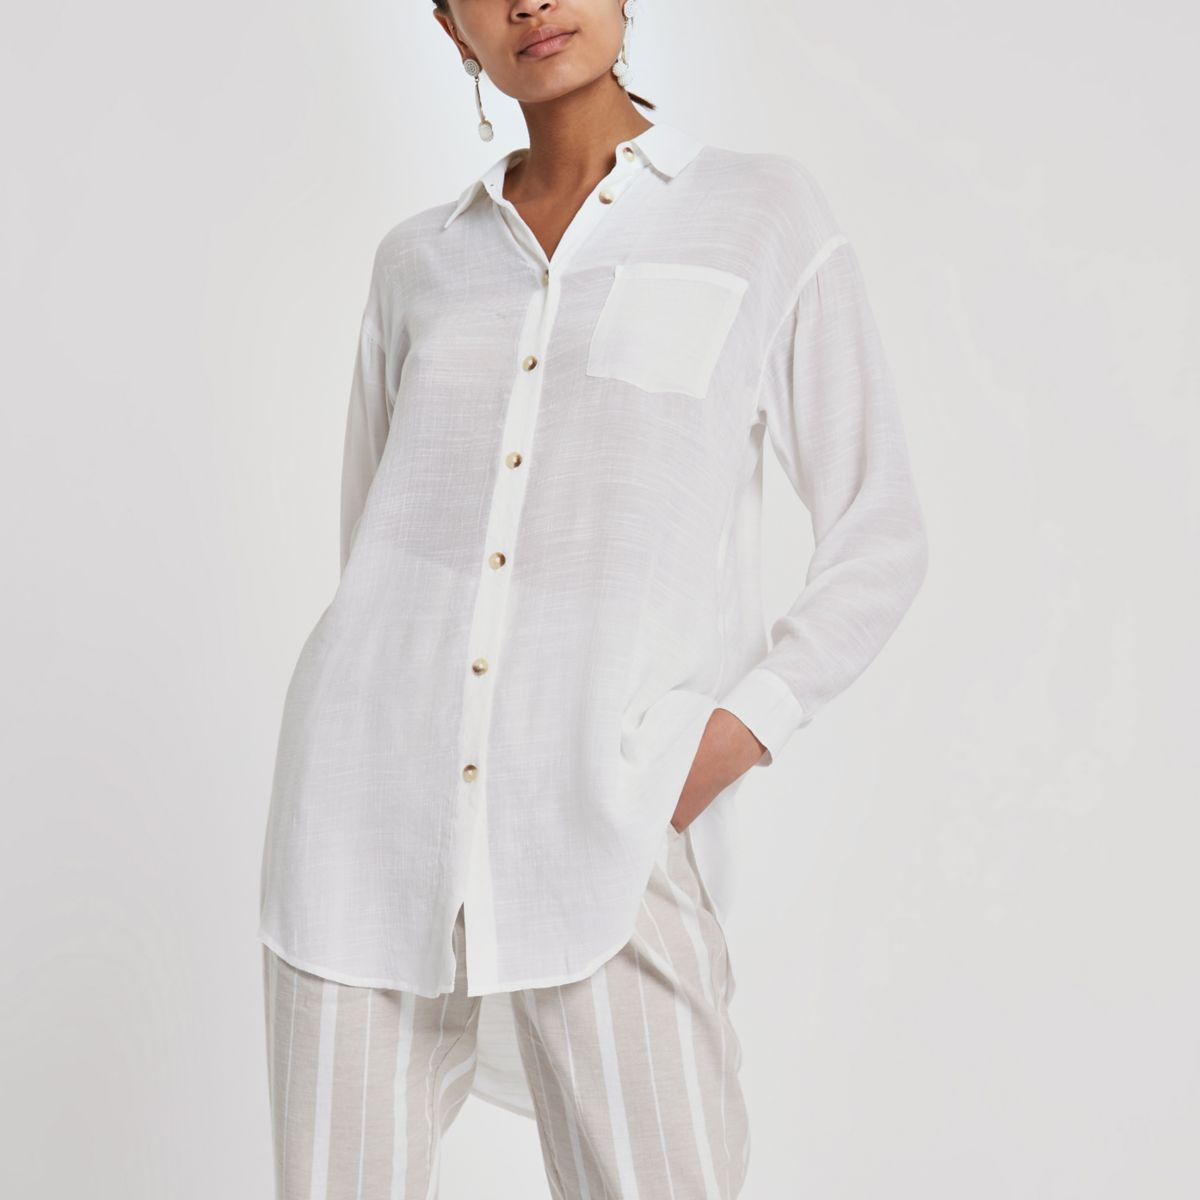 White longline long sleeve shirt